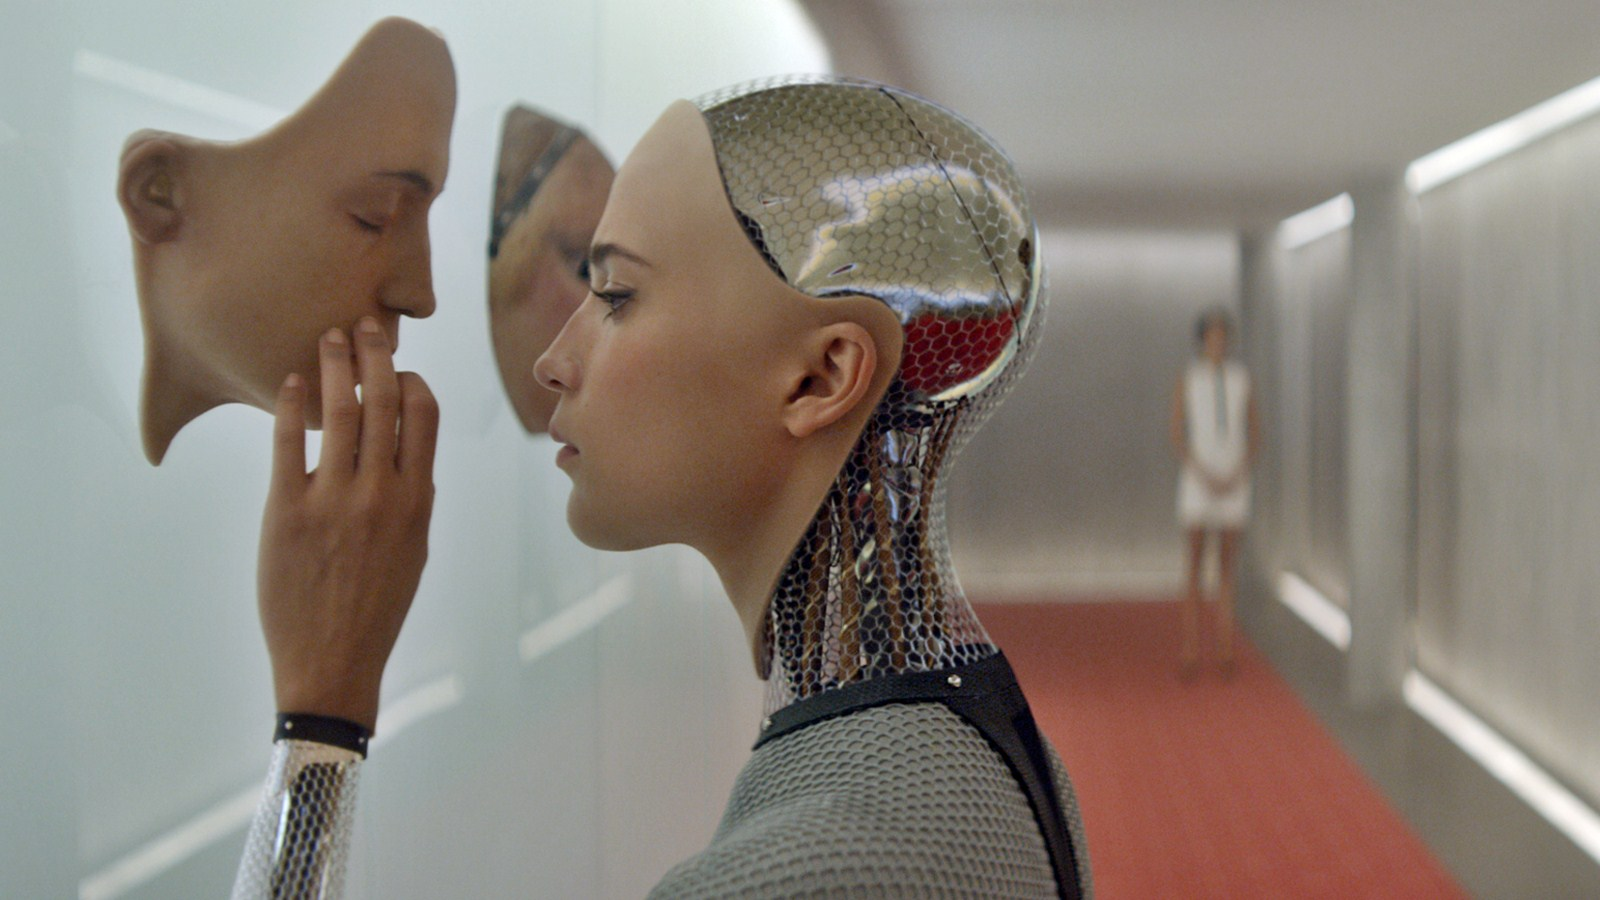 Tinder, the Turing test, and Ex Machina